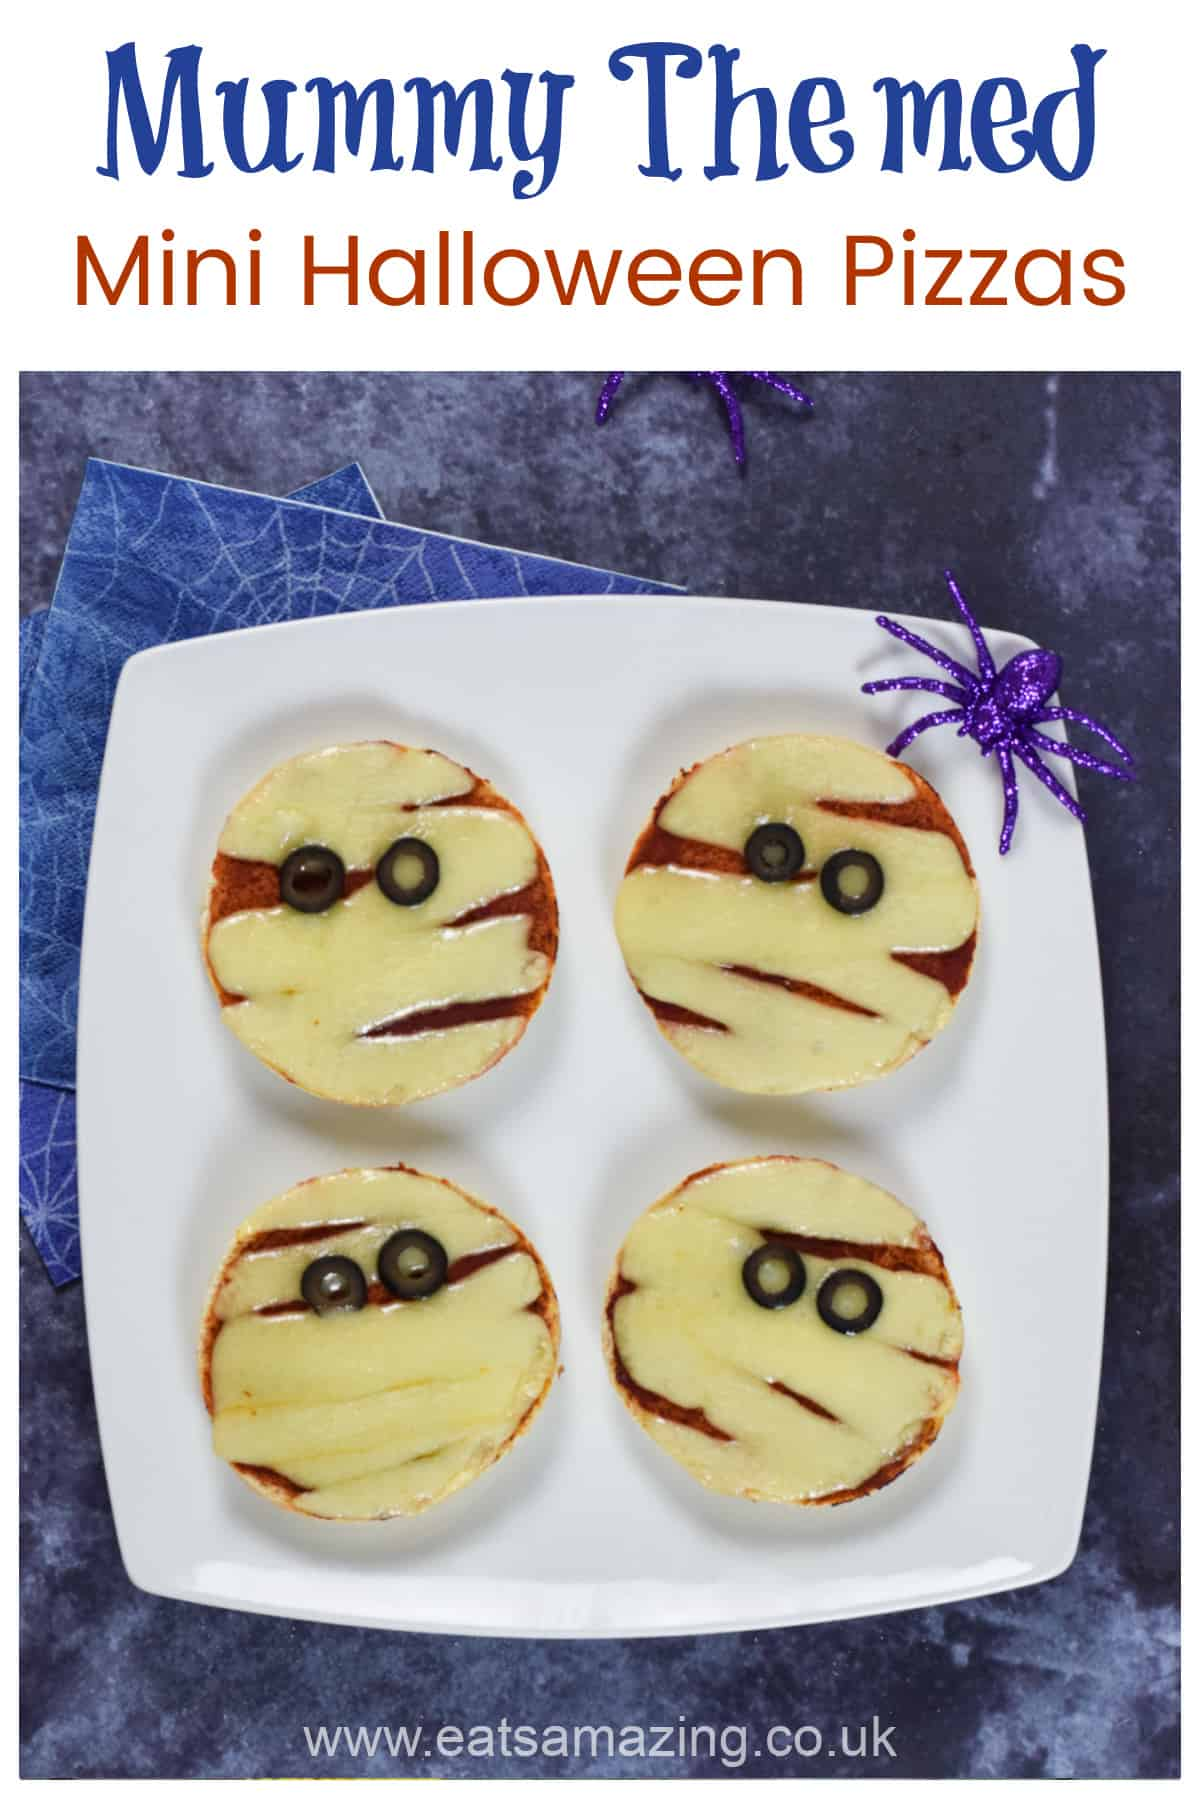 Cute and easy Mummy themed mini Halloween pizzas - fun Halloween party food for kids